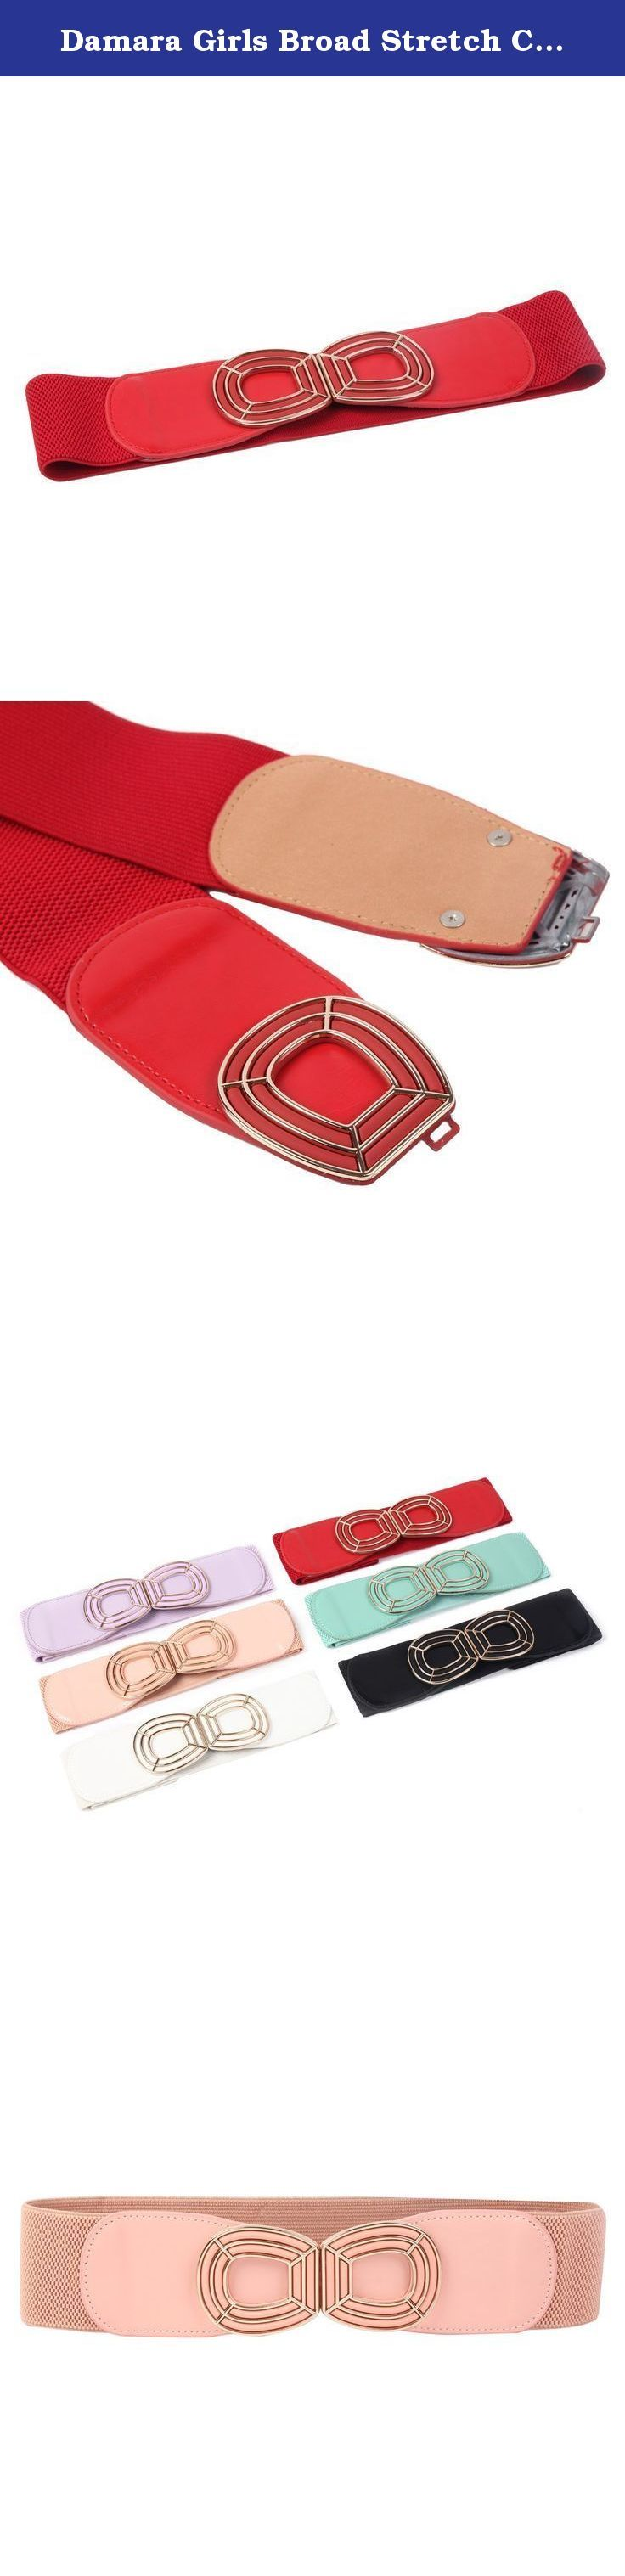 Damara Girls Broad Stretch Ceinture Girdle Belt,Pink. The pretty wide belt is made of elastic fabric .At each end of the belt ,is a color-matched metal head with a metal frame.It has double clasps closure. So fashion and adorable is it that it would be a perfect decoration for your dress, loose T-shirt, windbreak,etc. Suitable for female at all daily occasions.The belt is strech, and the natural length/waist is 62 cm (24.8 inch).Belt Width : 5.9cm/ 2.3 inches.